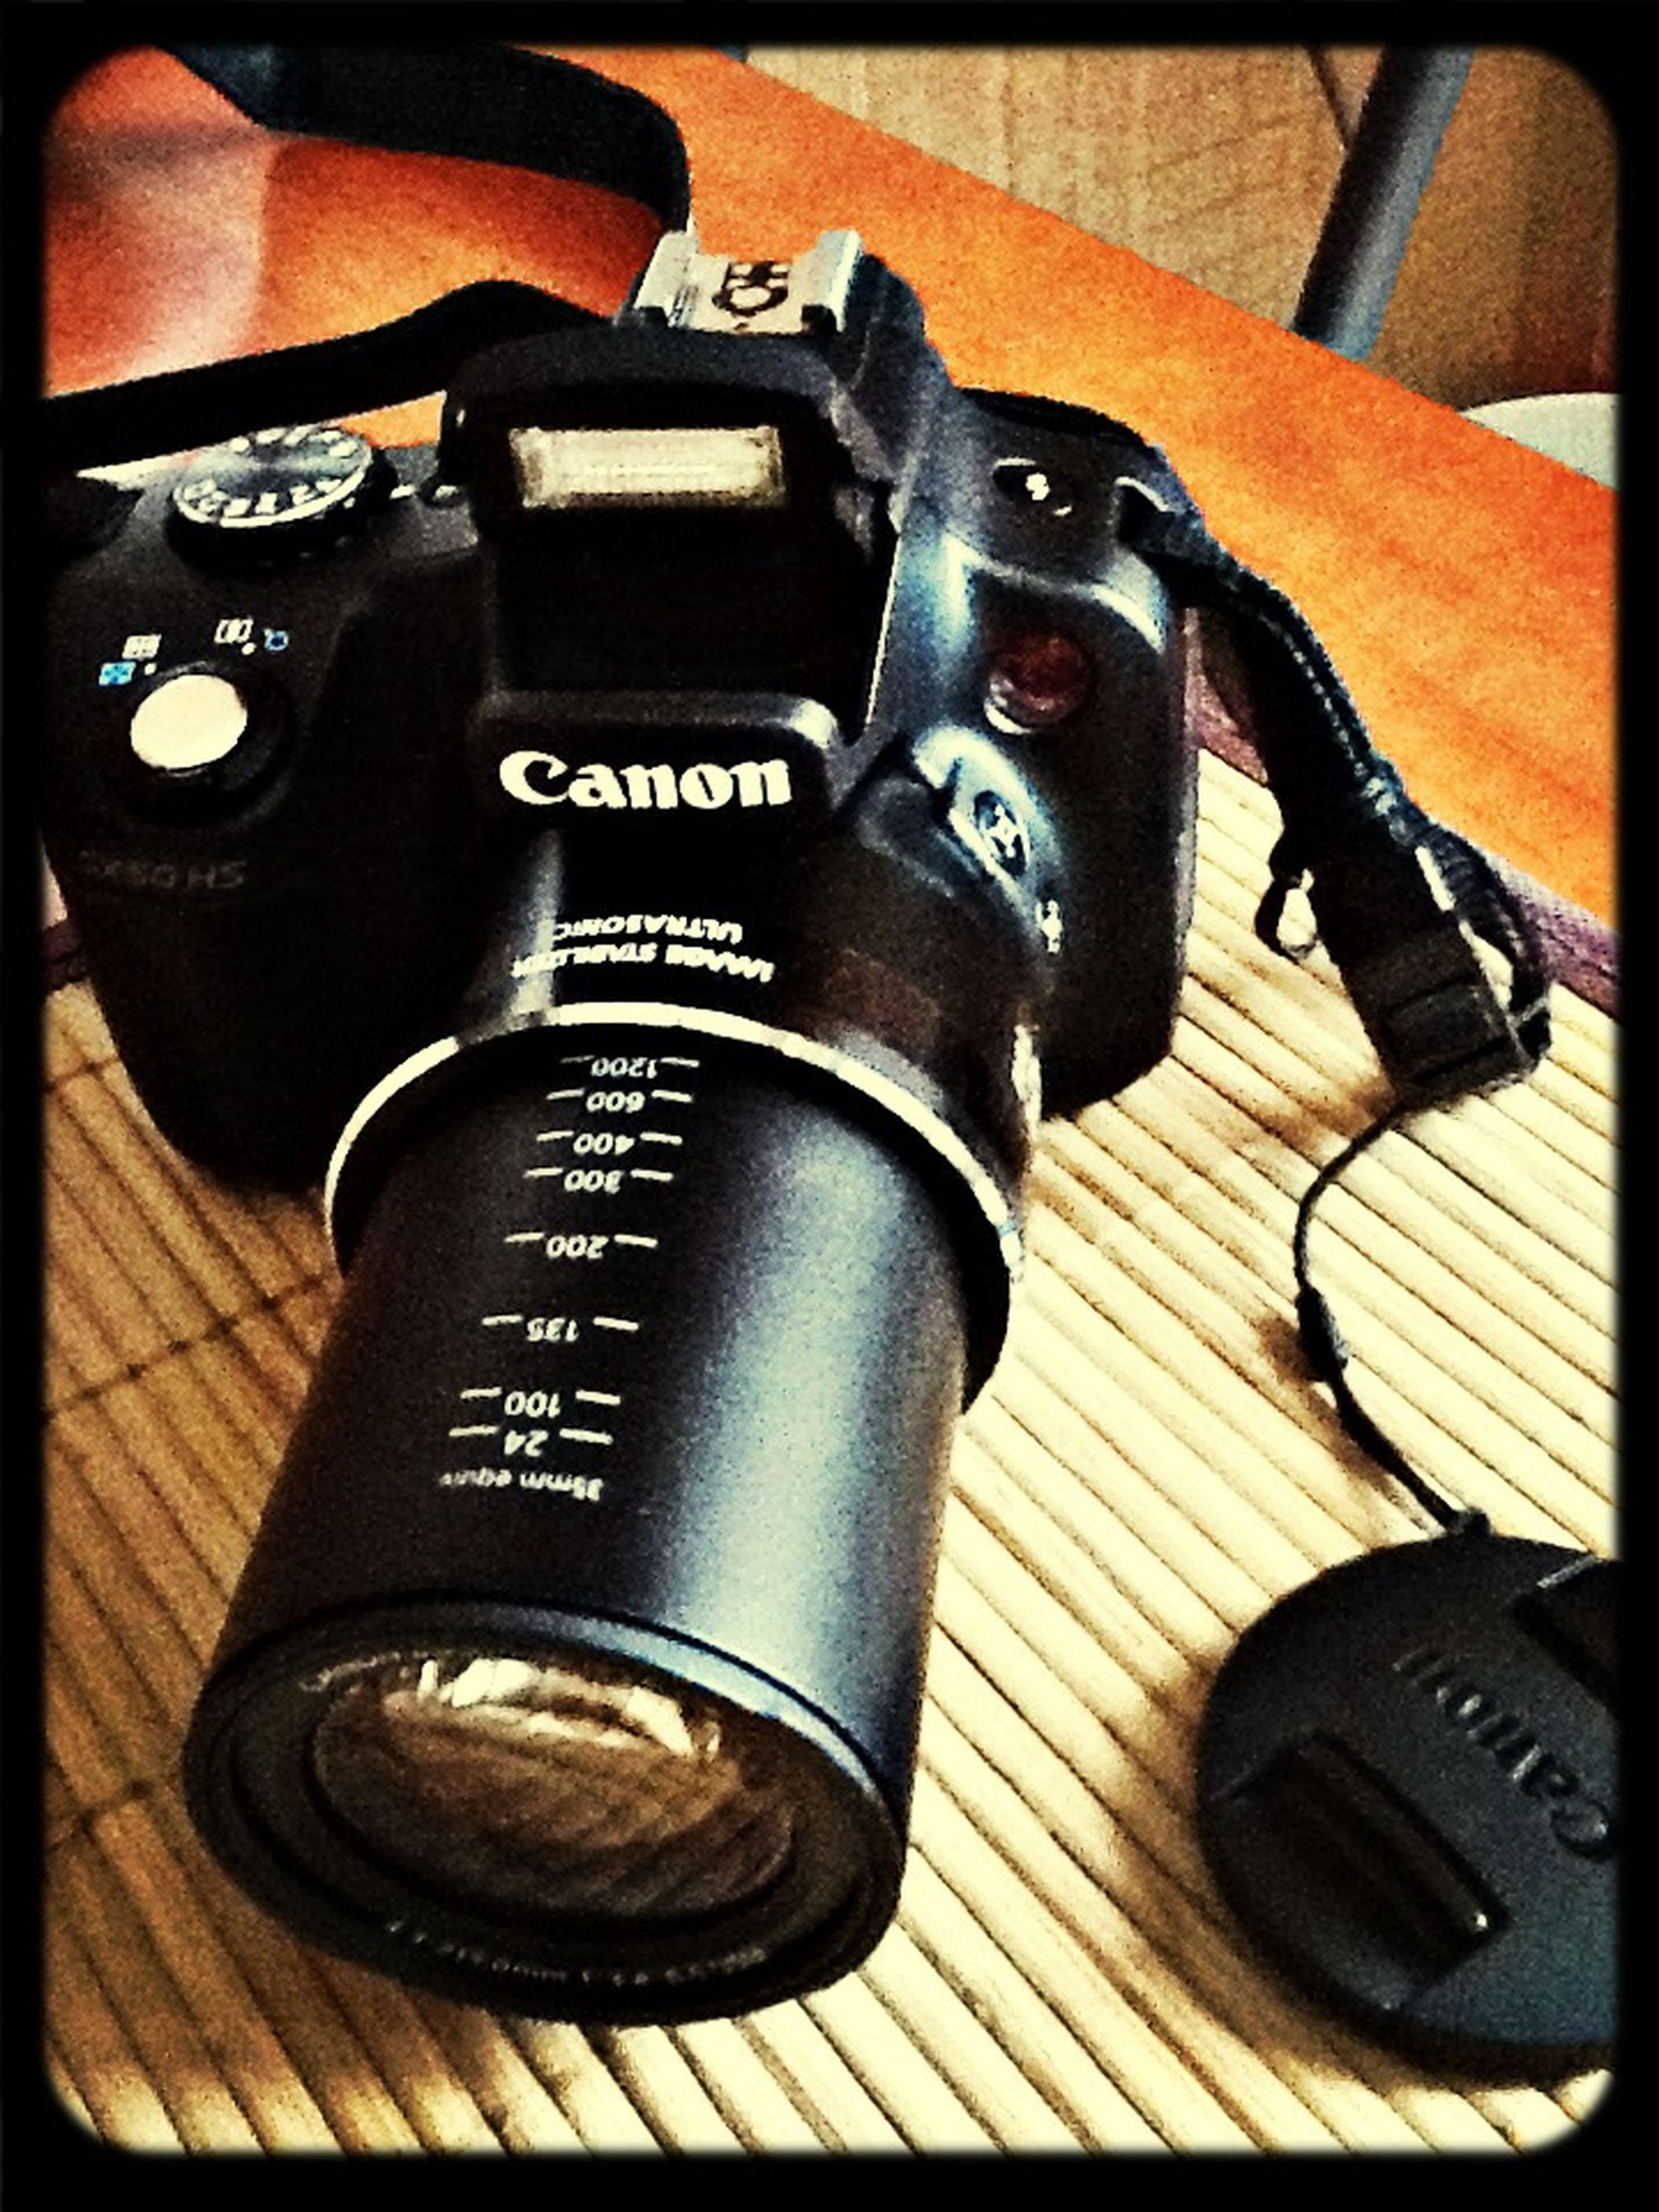 technology, indoors, close-up, old-fashioned, transfer print, retro styled, music, still life, auto post production filter, equipment, musical instrument, high angle view, arts culture and entertainment, metal, photography themes, part of, communication, camera - photographic equipment, musical equipment, vintage